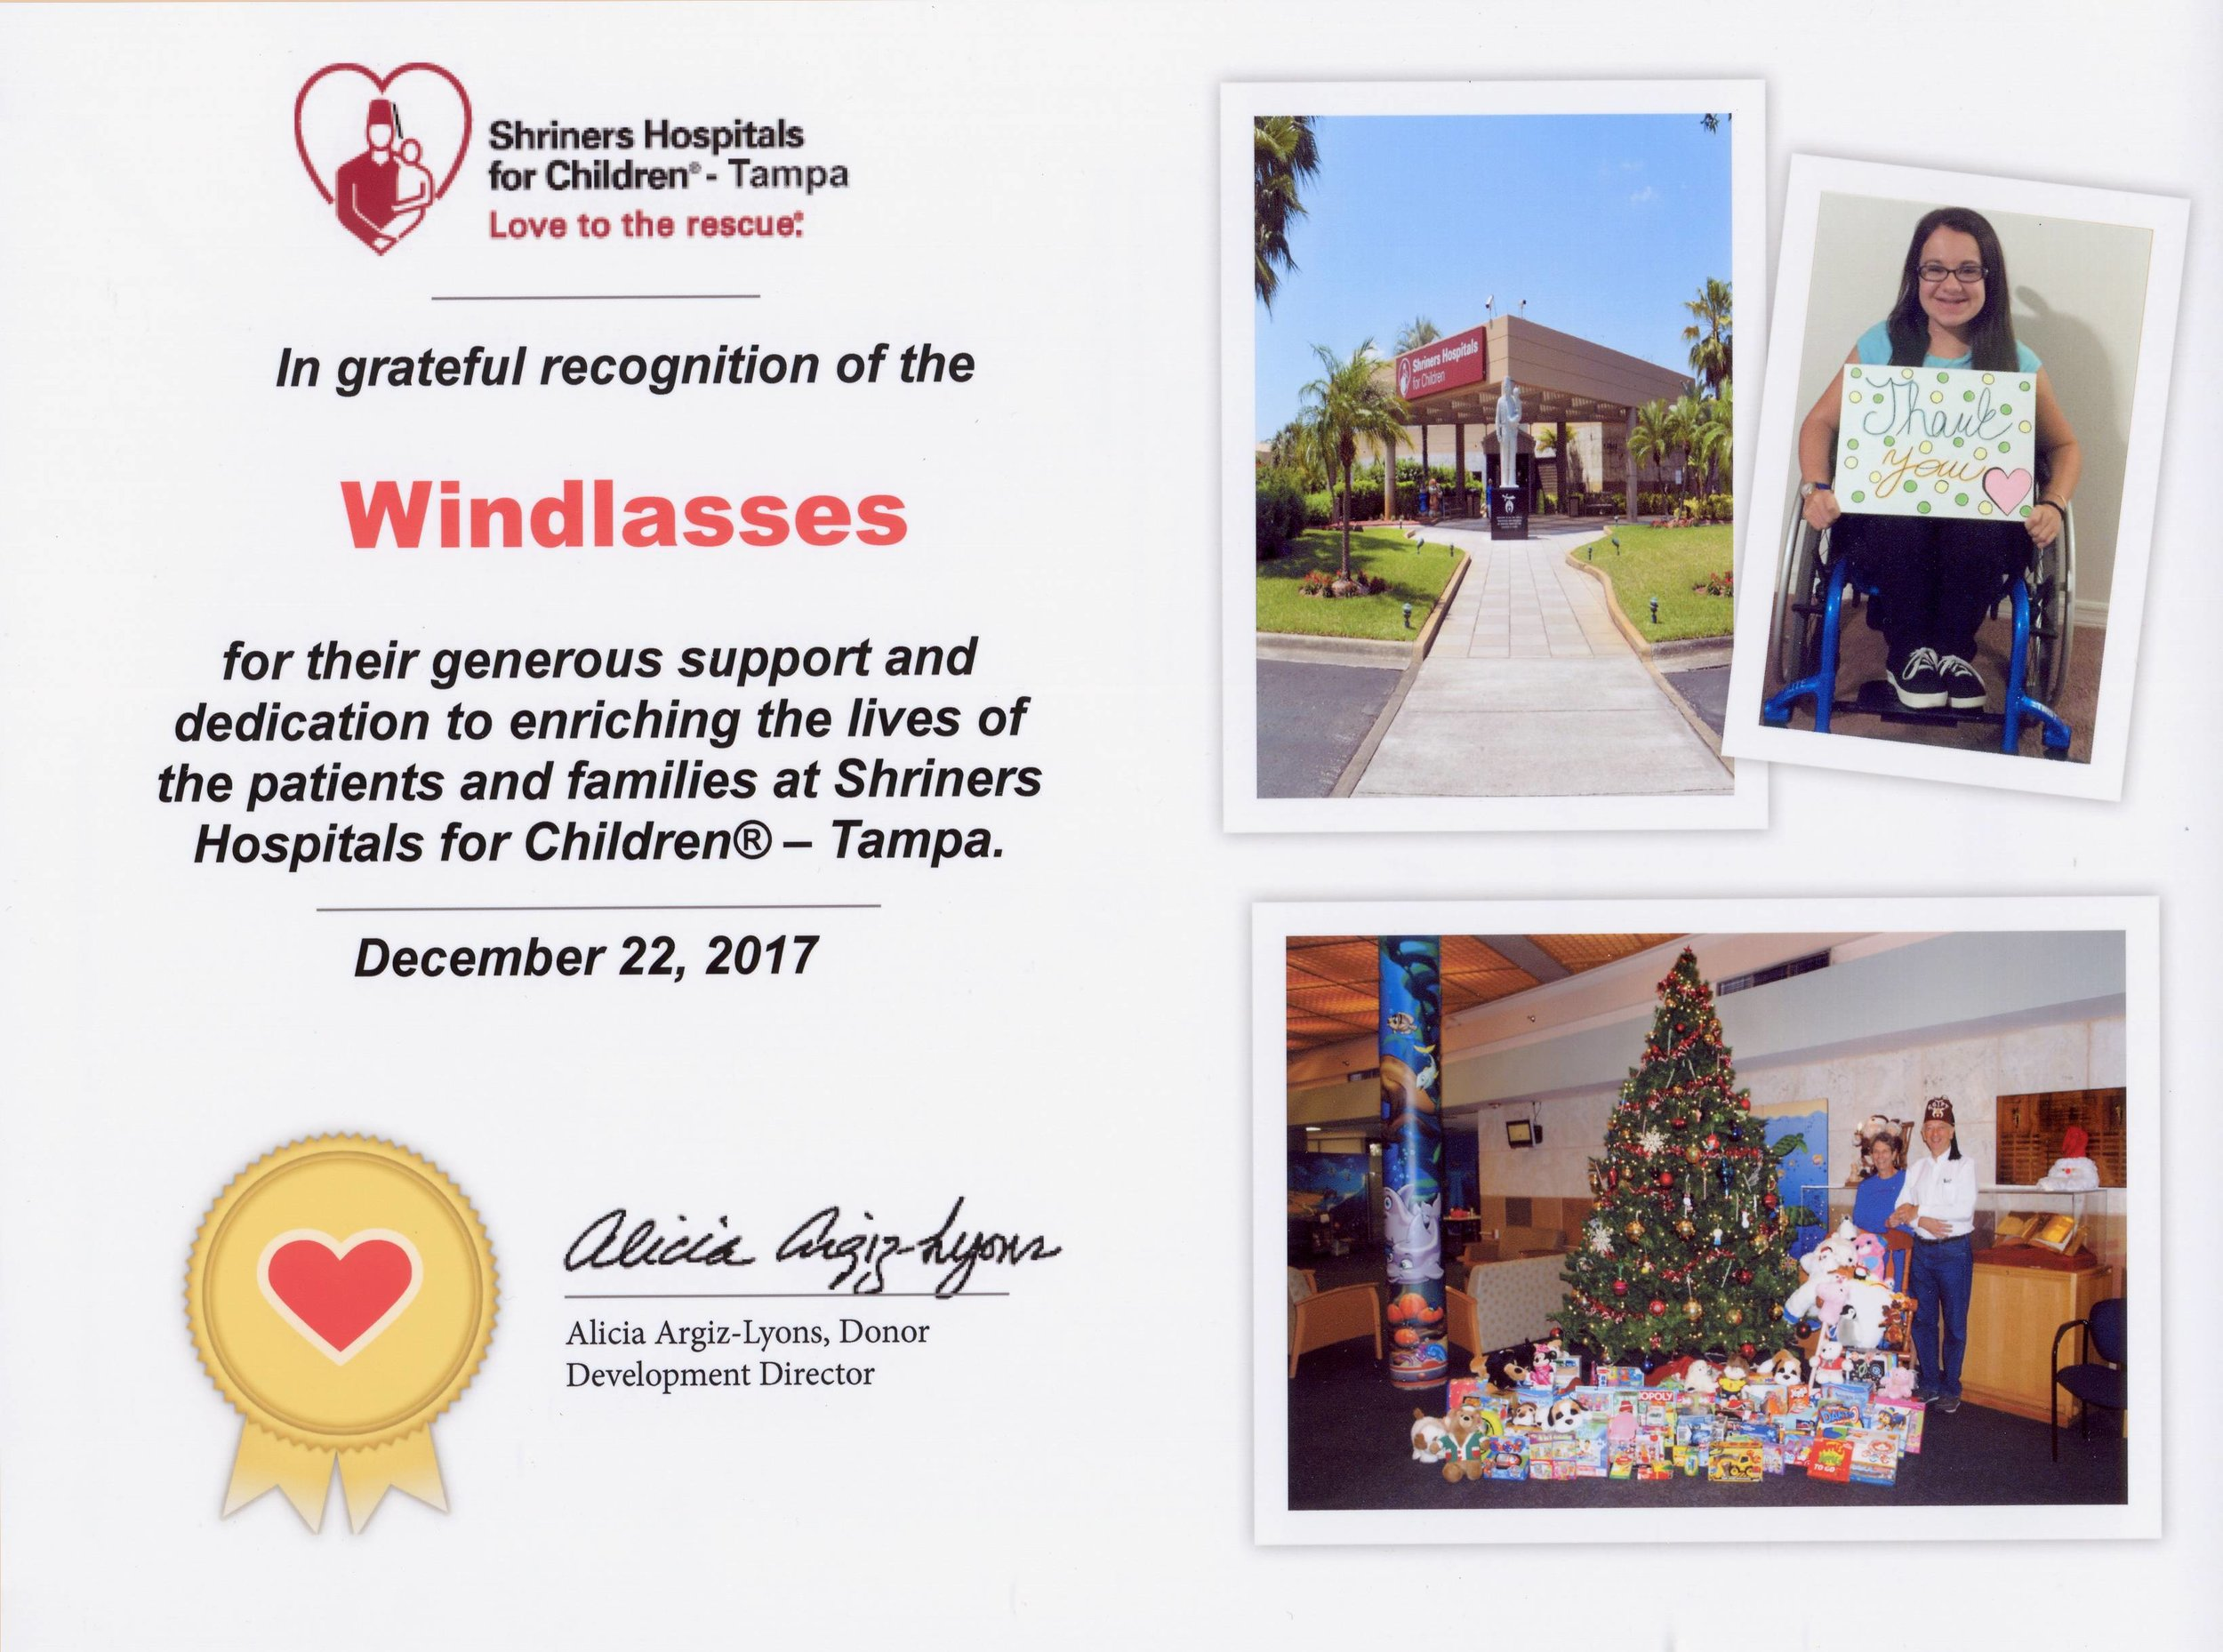 Shriners Christmas 2017 Gifts - Recognition Certificate-A-a.jpg